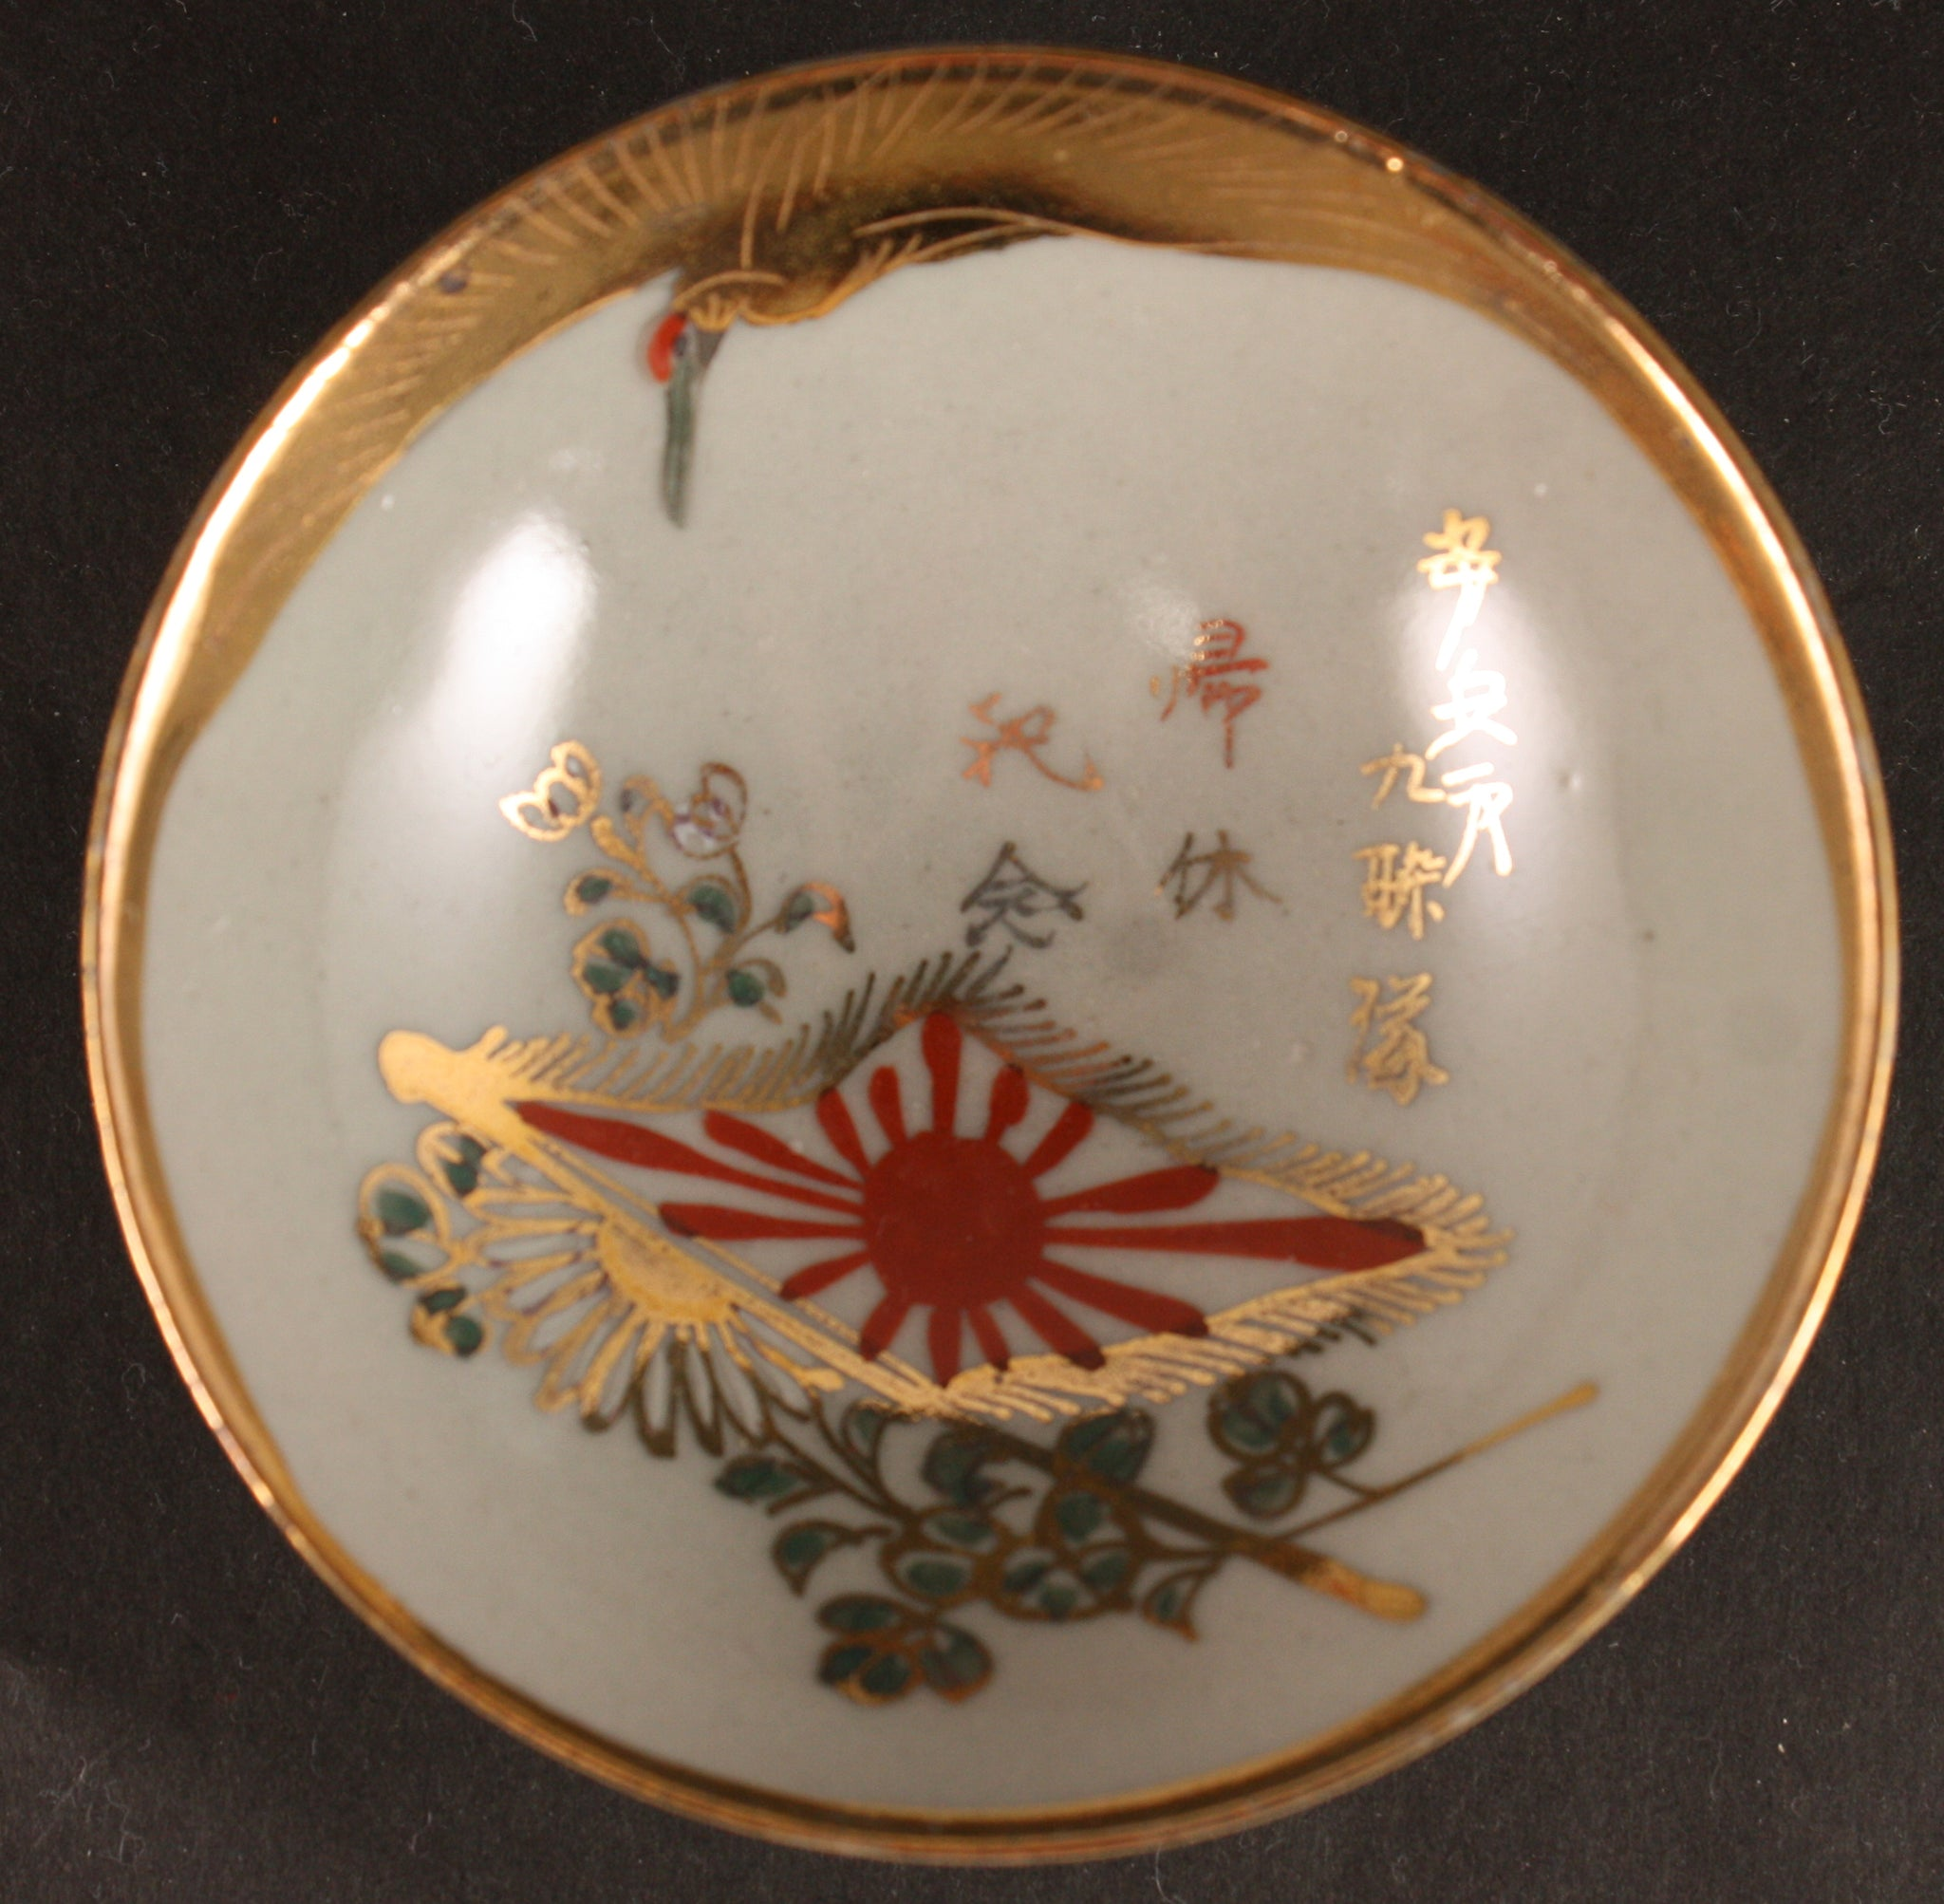 Antique Japanese Military Crane Flag Chrysanthemum Furlough Army Sake Cup